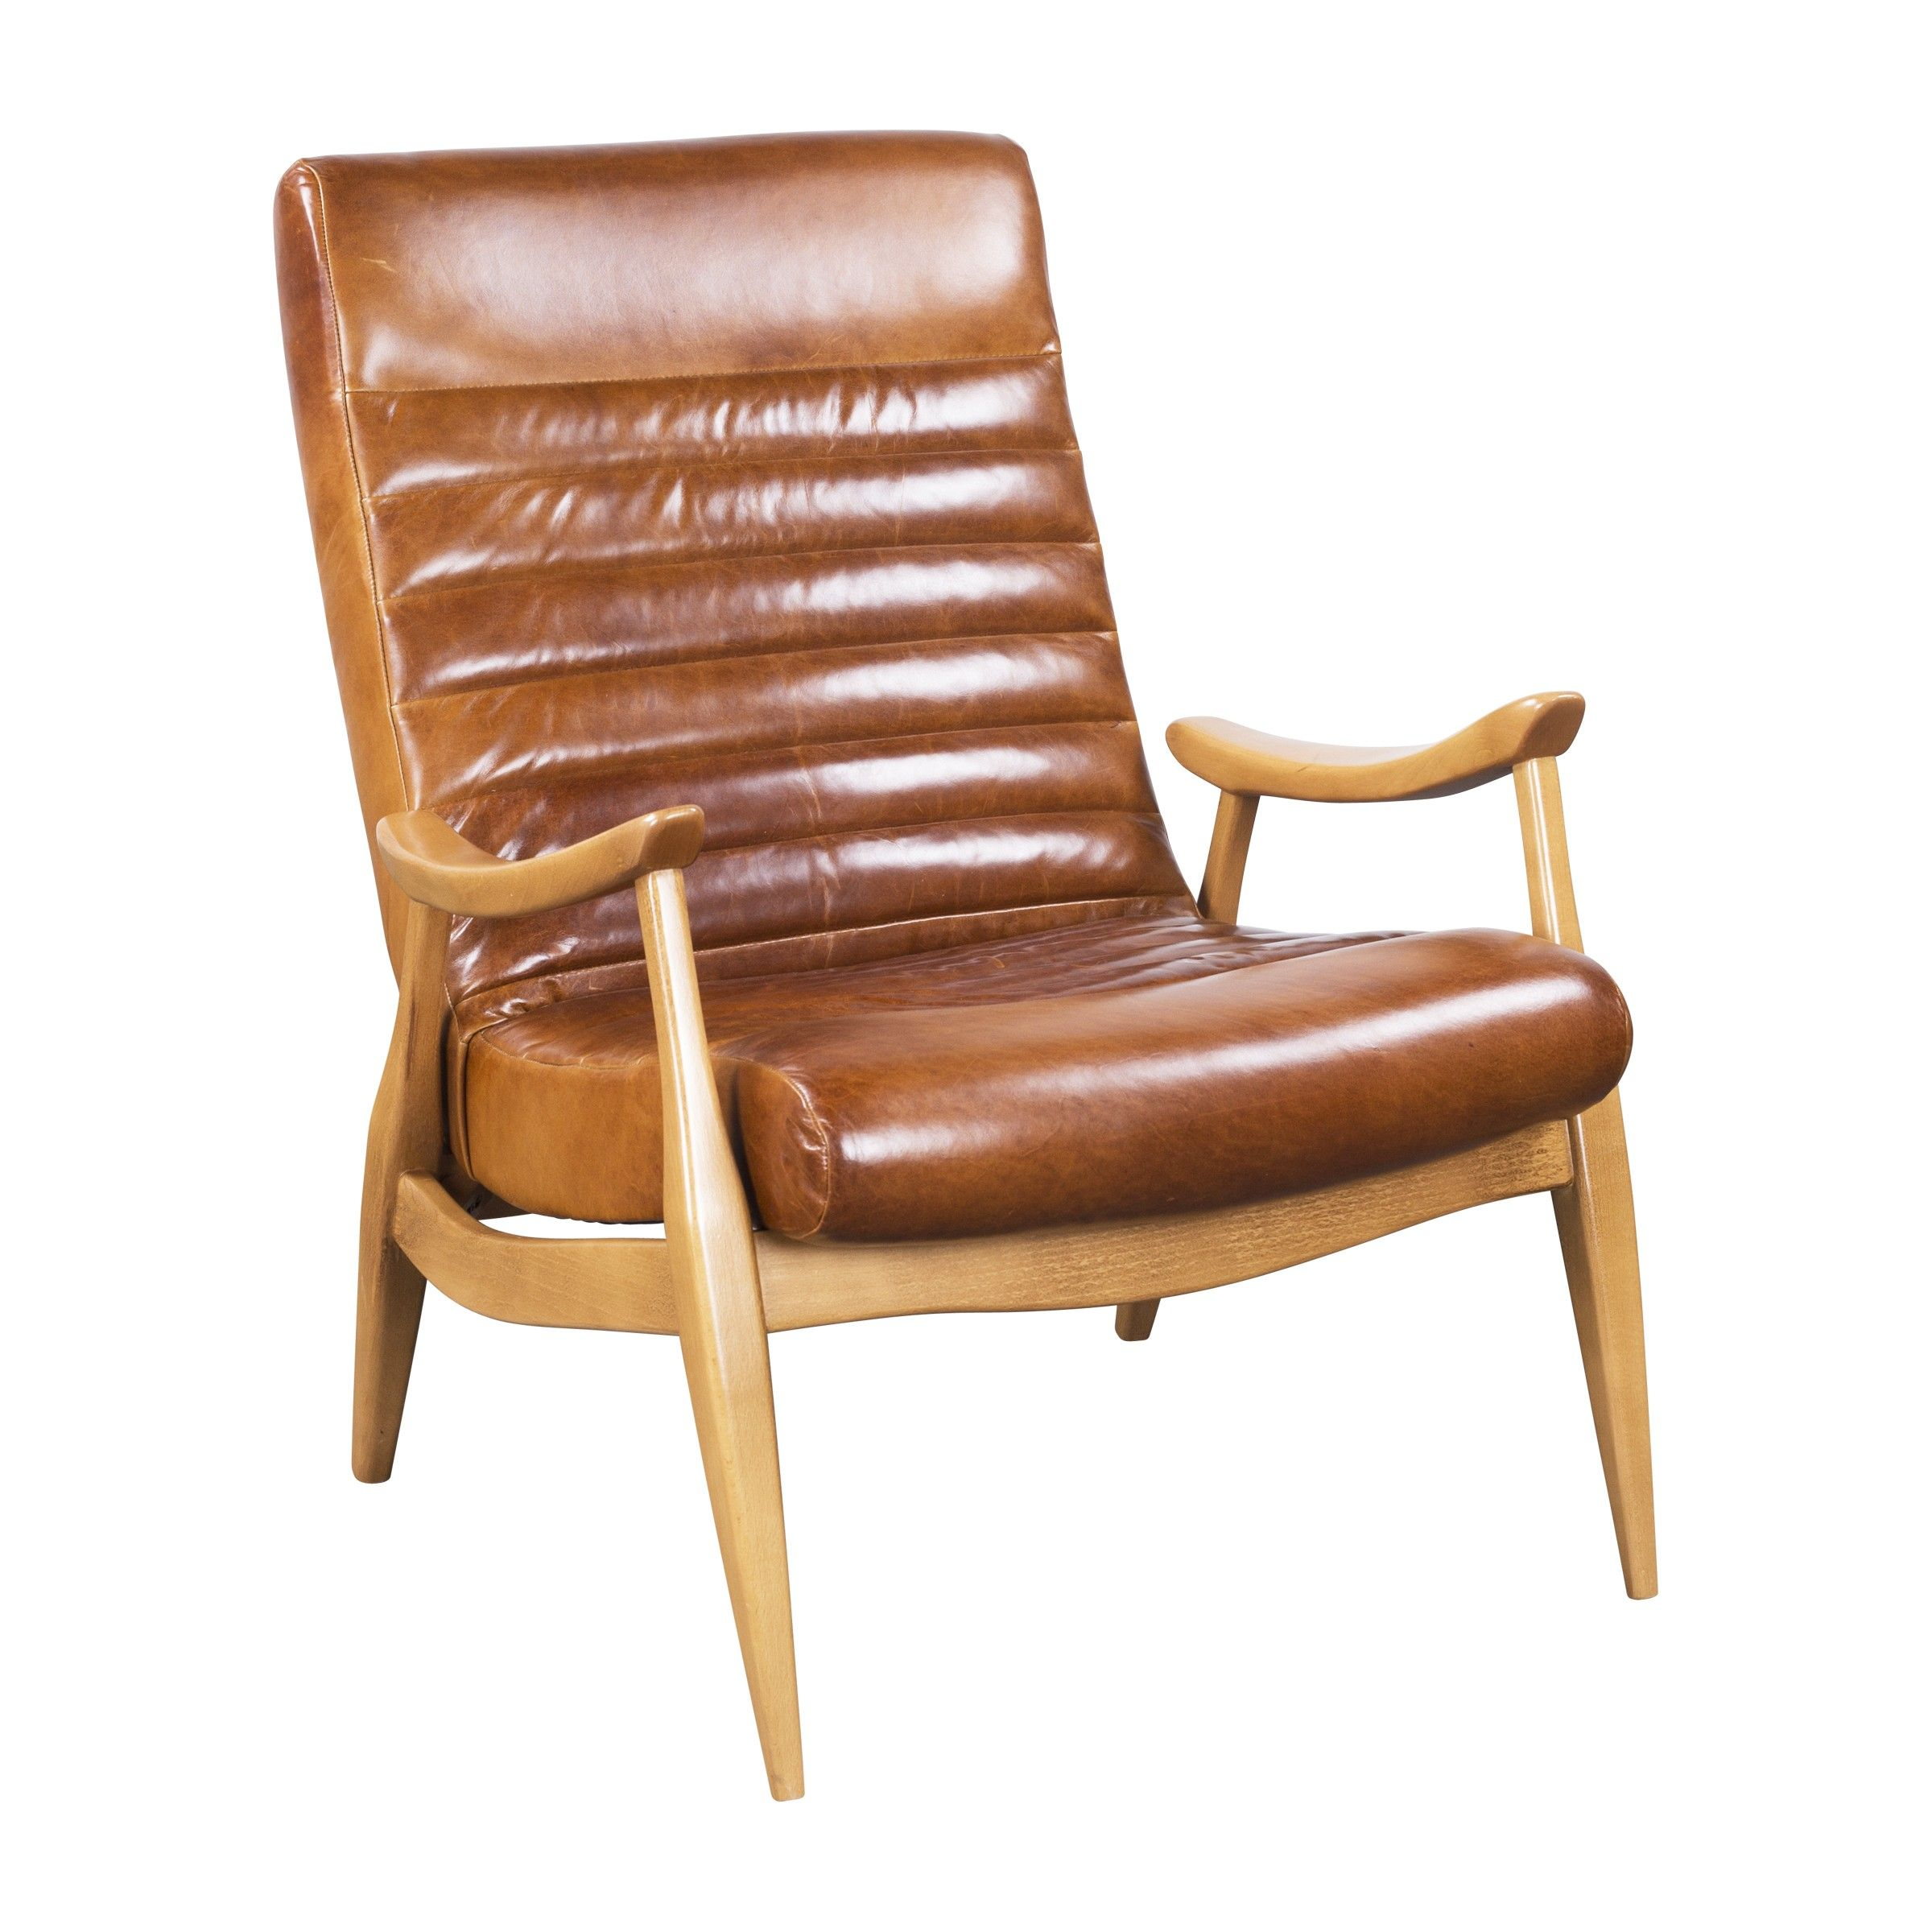 HANS CARAMEL LEATHER CHAIR by Dwell Studio